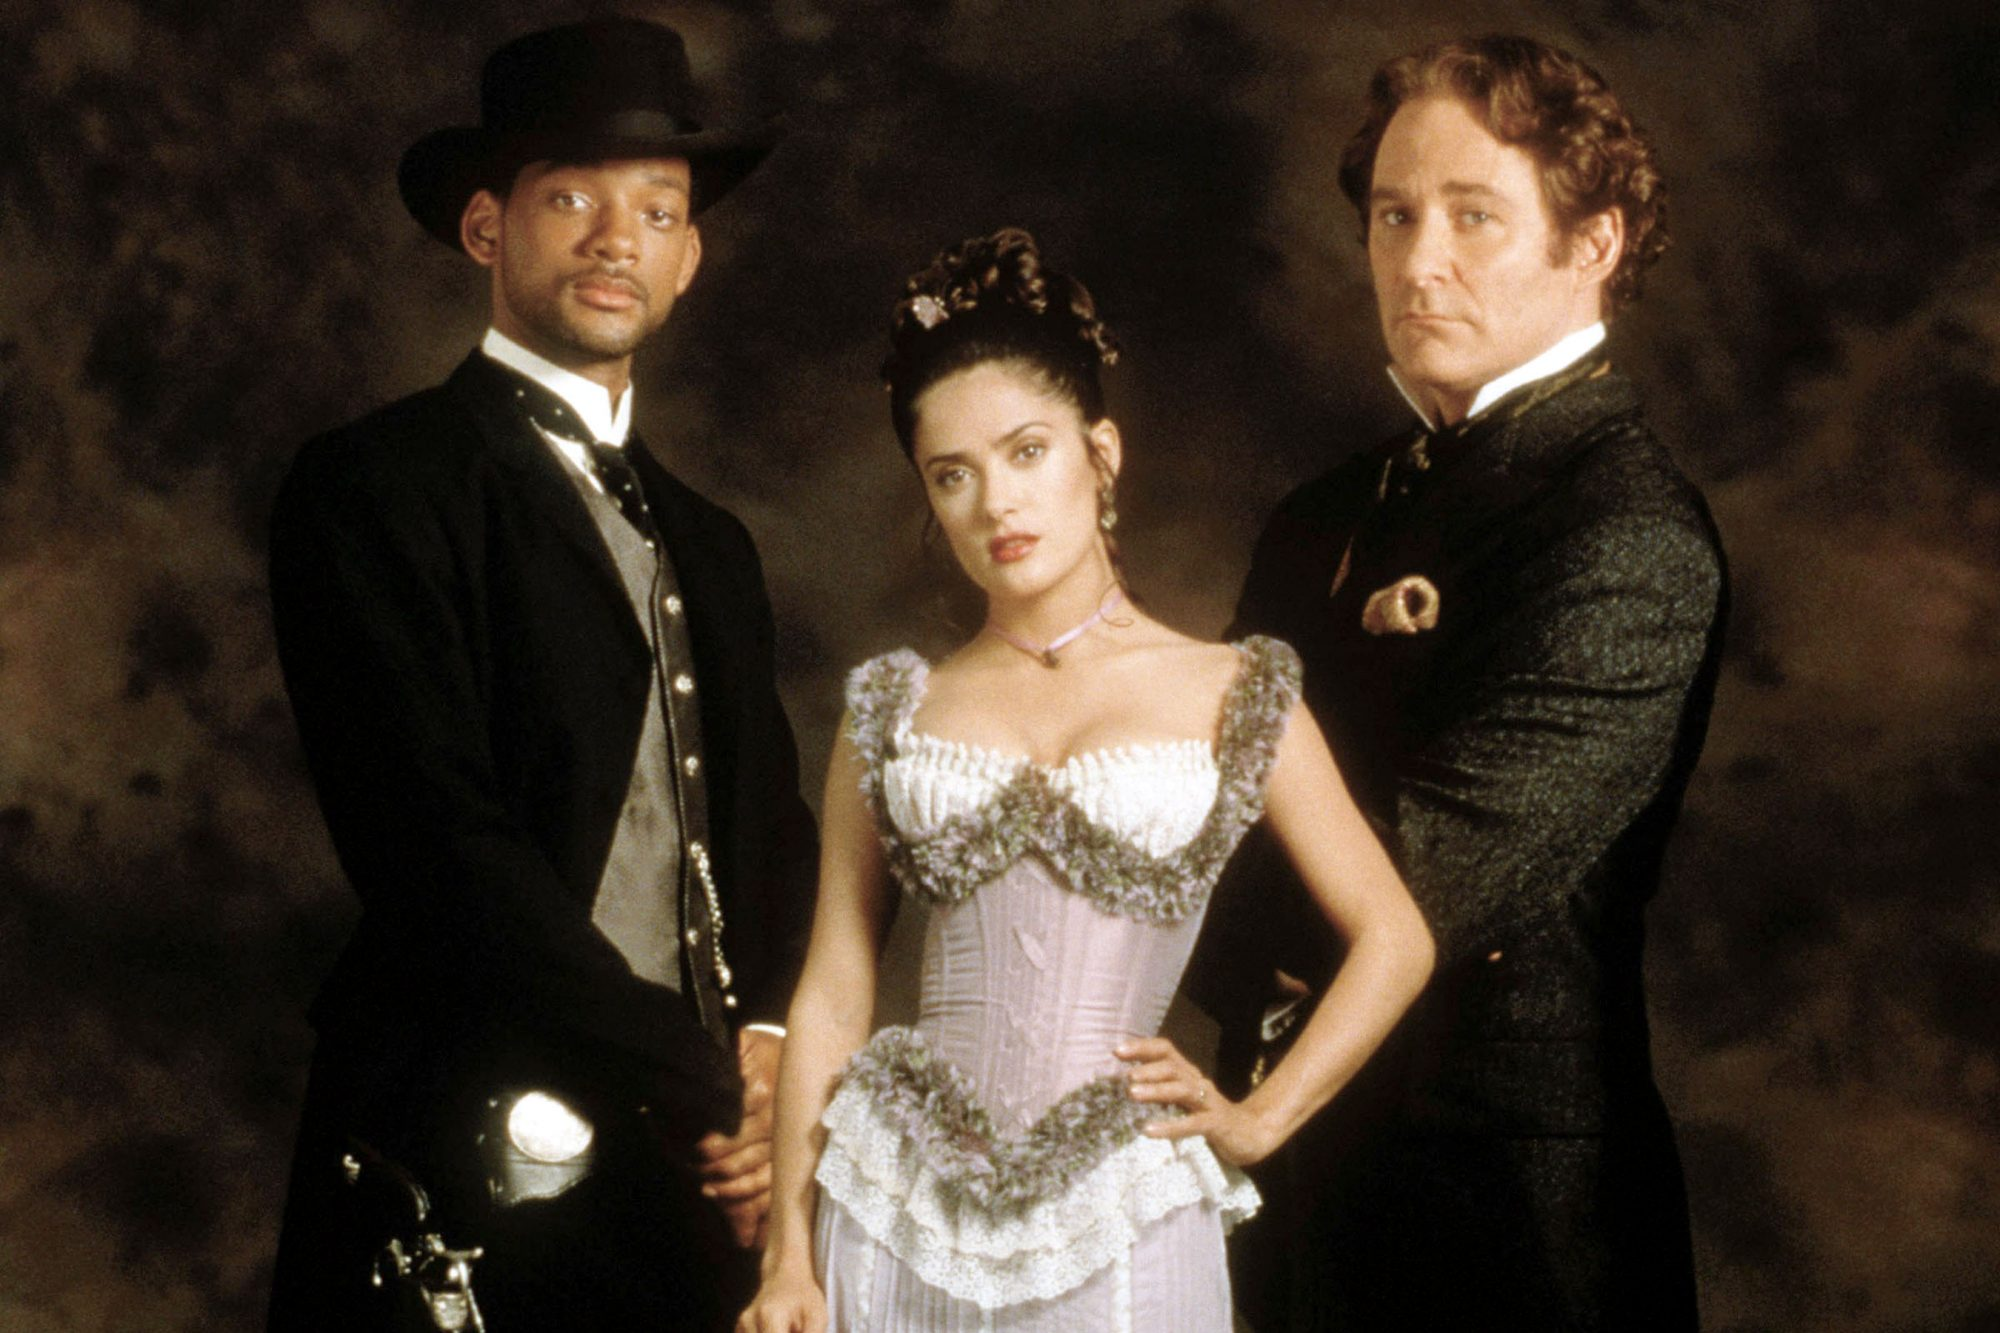 WILD WILD WEST, Will Smith, Salma Hayek, Kevin Kline, 1999, (c) Warner Brothers/courtesy Everett Col